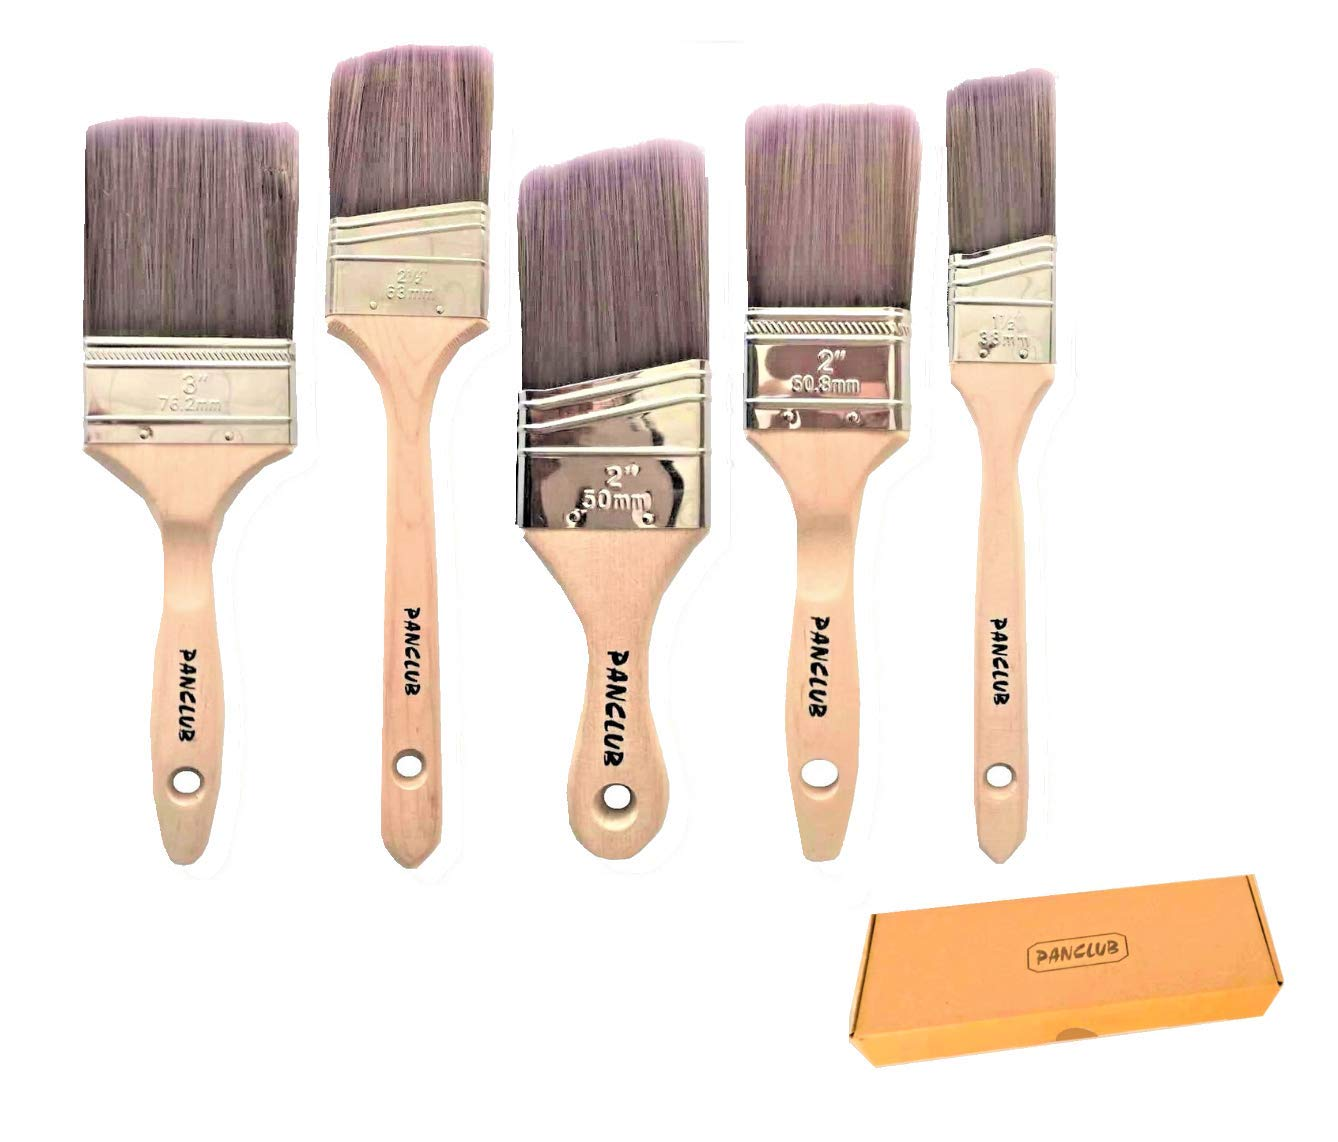 PANCLUB Paint Brushes Set 5 Pcs   2,3 Flat and 1.5,2.5 Angled and 2 Shortcut Angle Sash   Wood Handle, Paint Brushes for Professional Results On Walls, Trim, Cabinets, Doors, Fences, Decks, Touch Ups